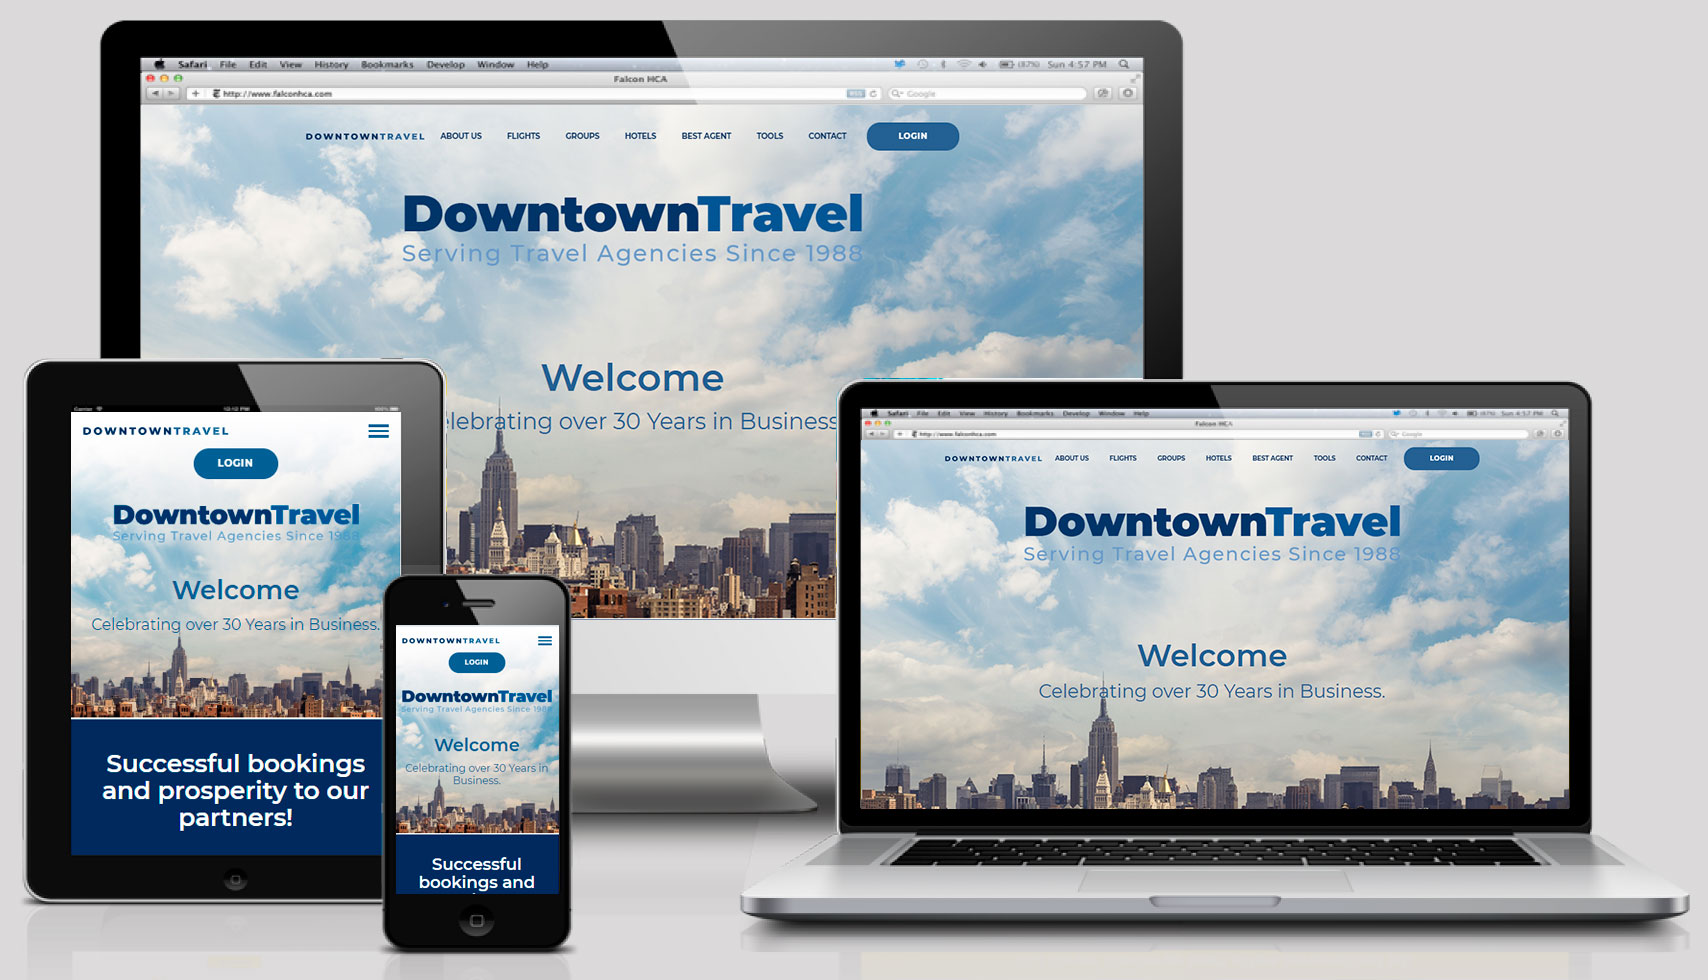 http://downtowntravel.com/